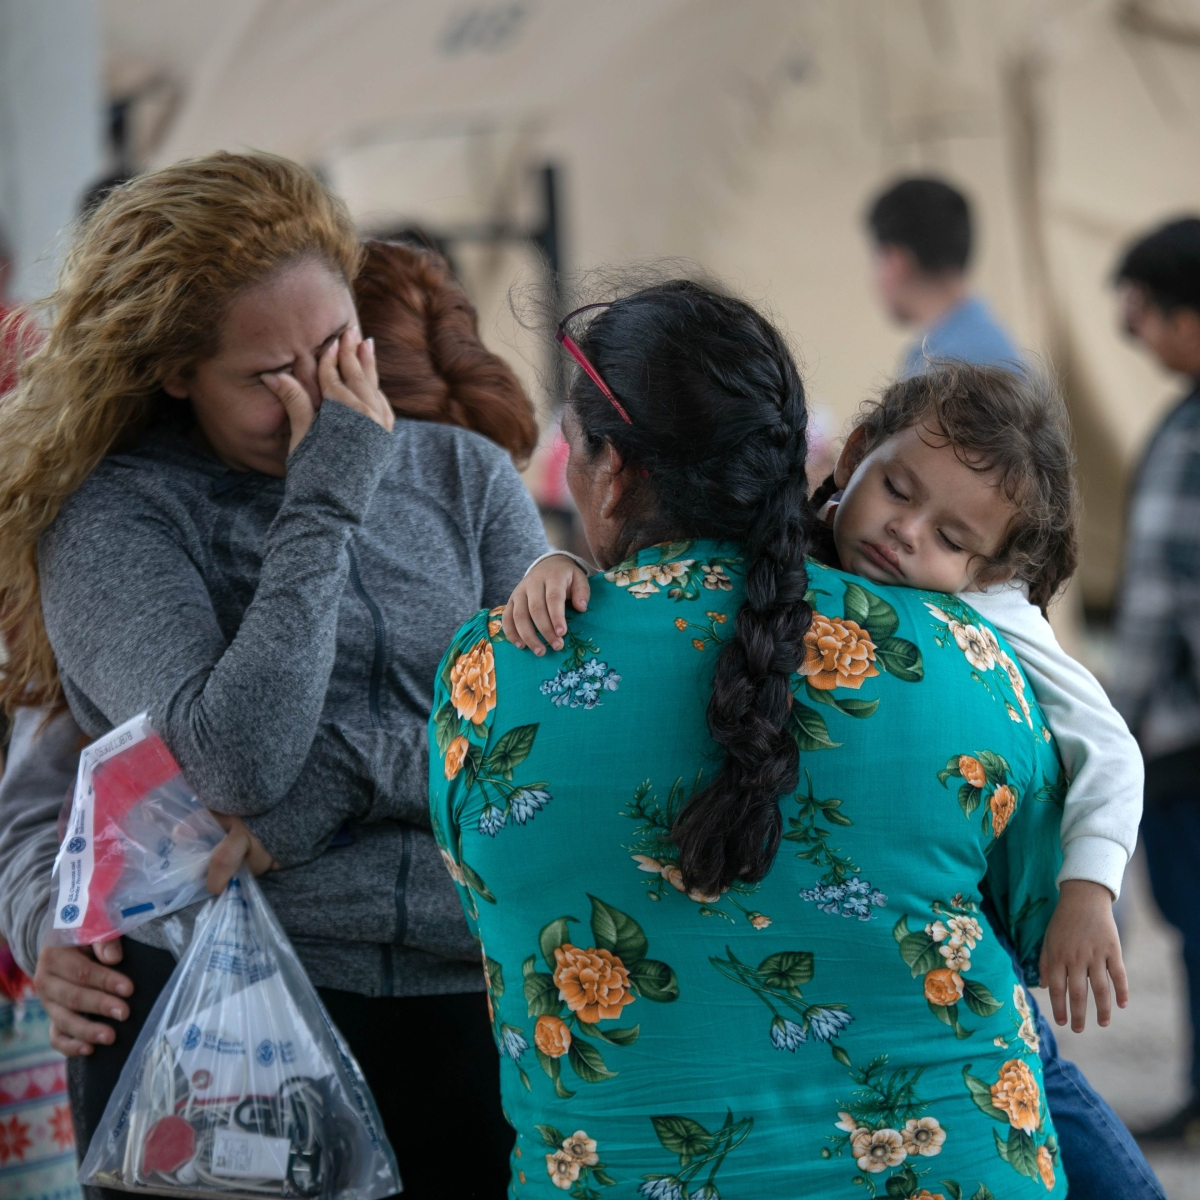 Tally of children split at border tops 5,400 in new count